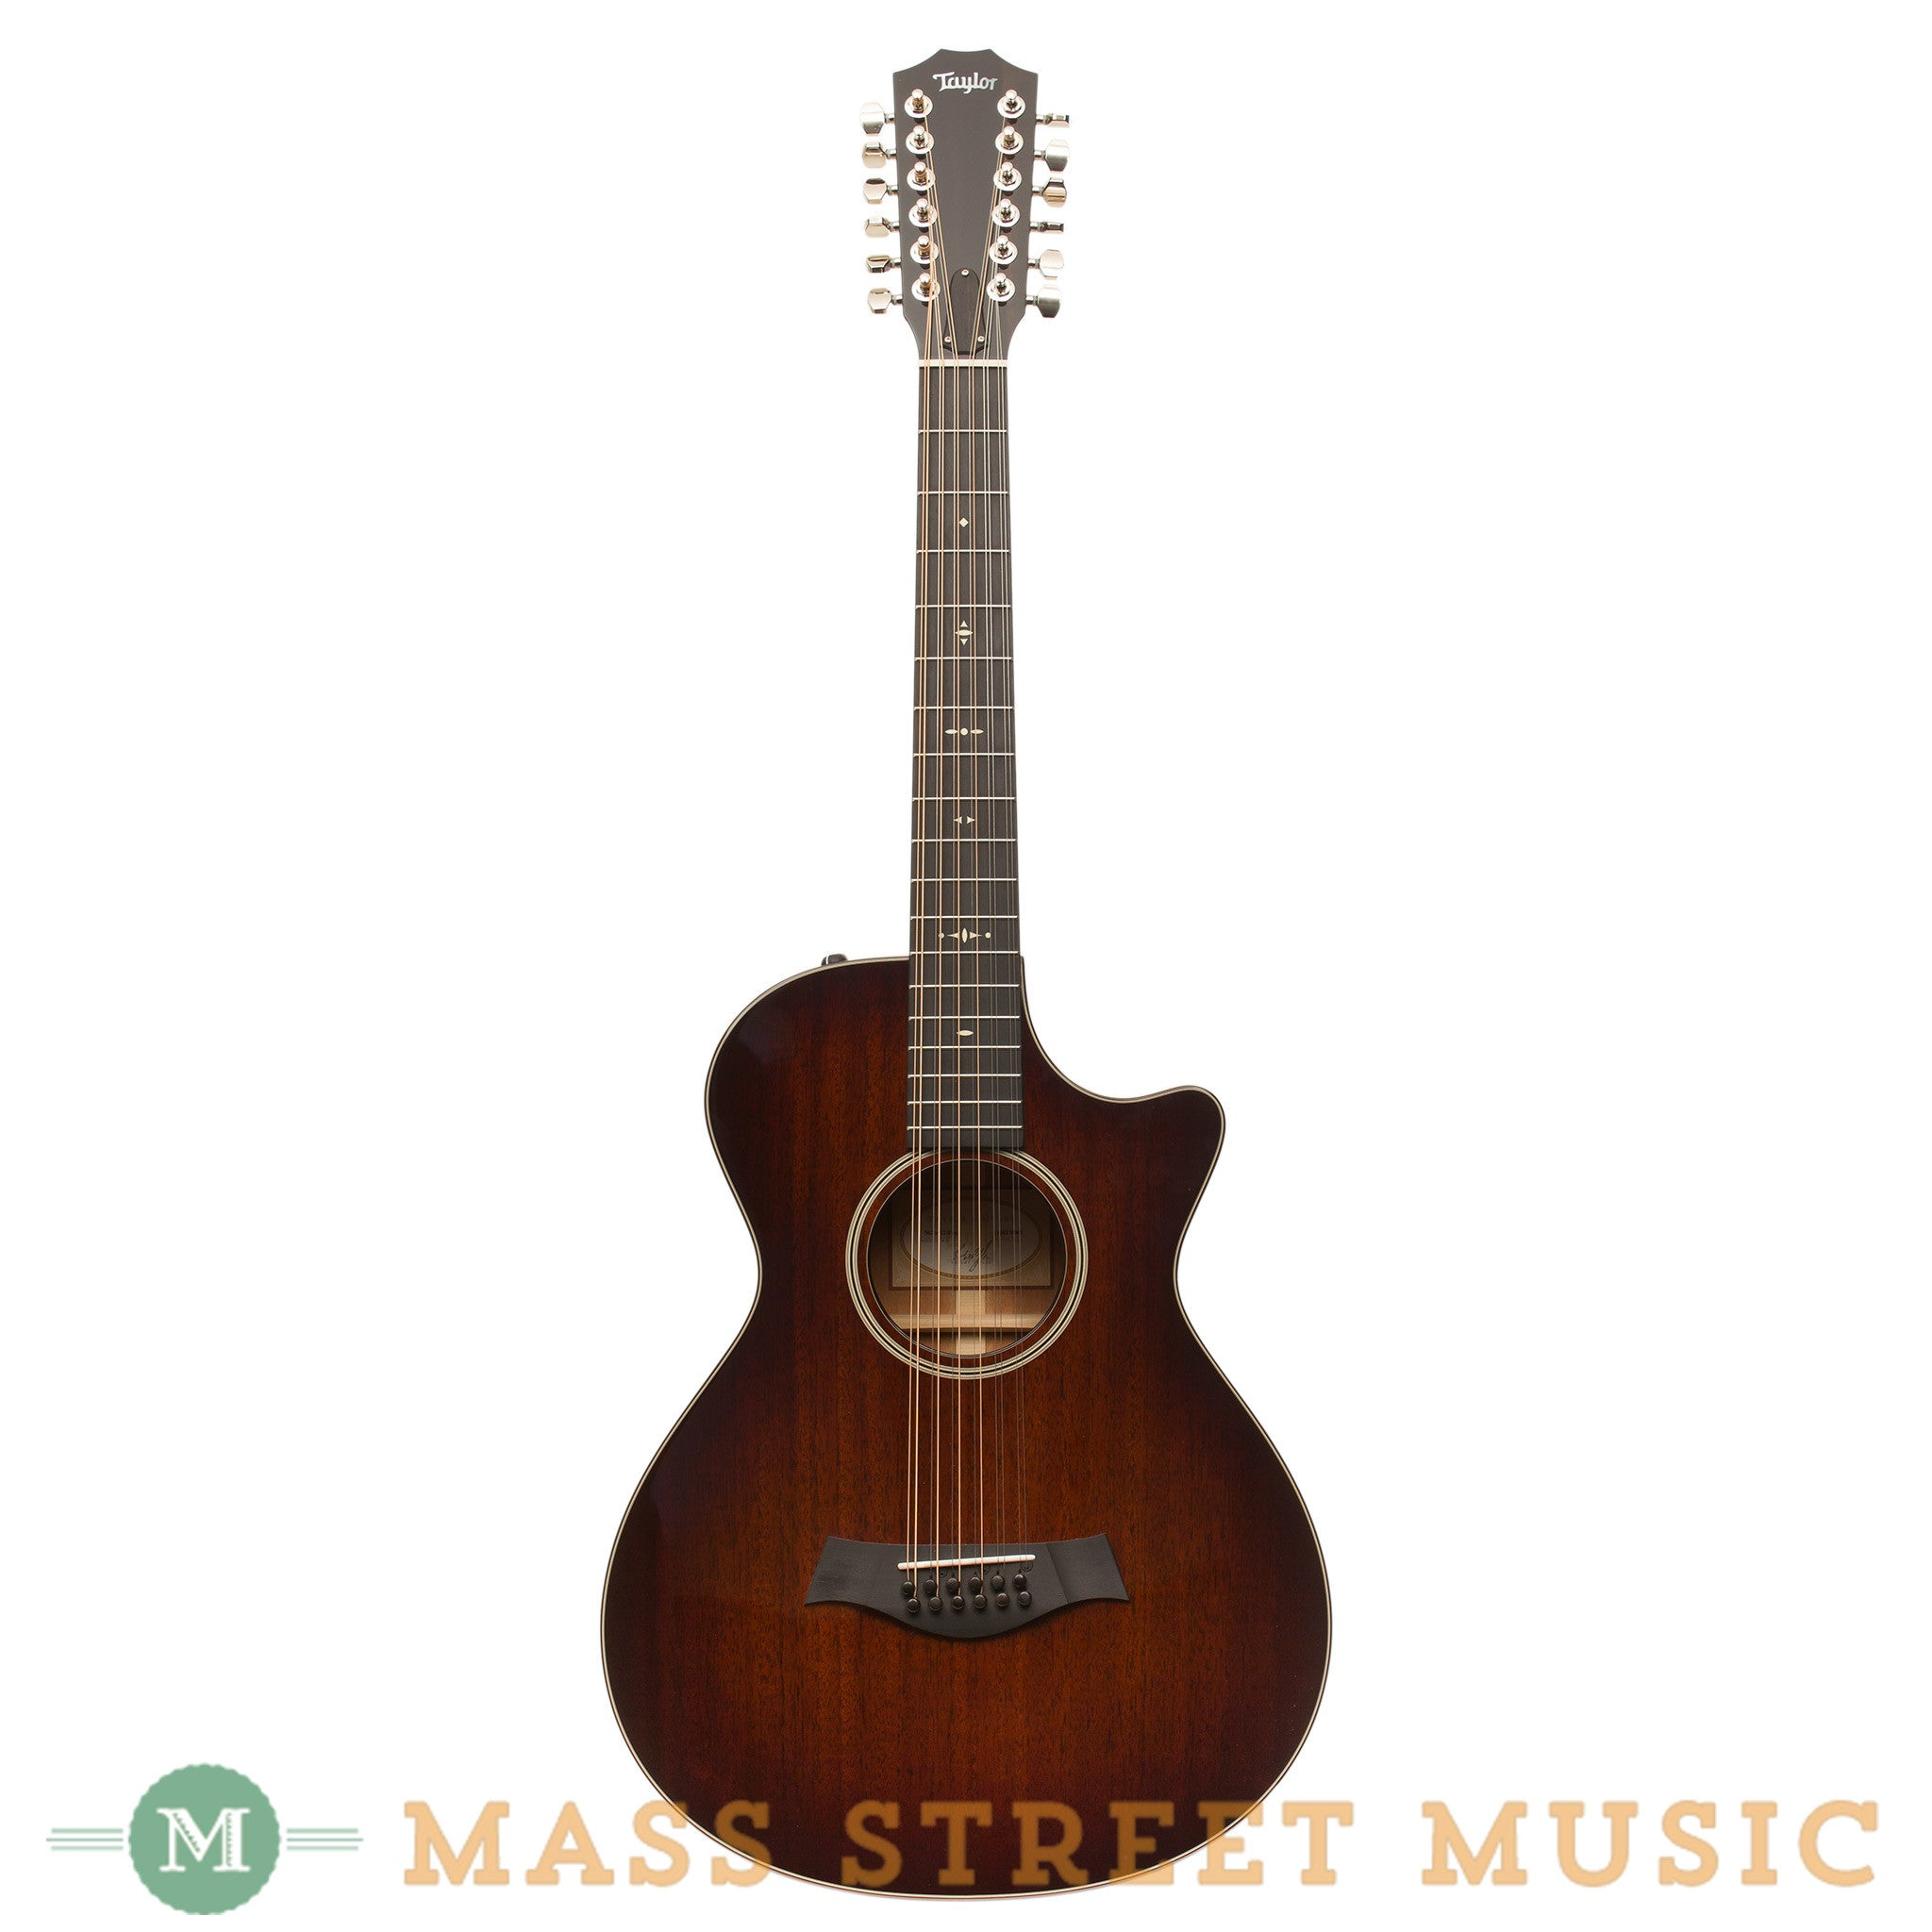 taylor acoustic guitars 562ce 12 string 12 fret mass street music store. Black Bedroom Furniture Sets. Home Design Ideas